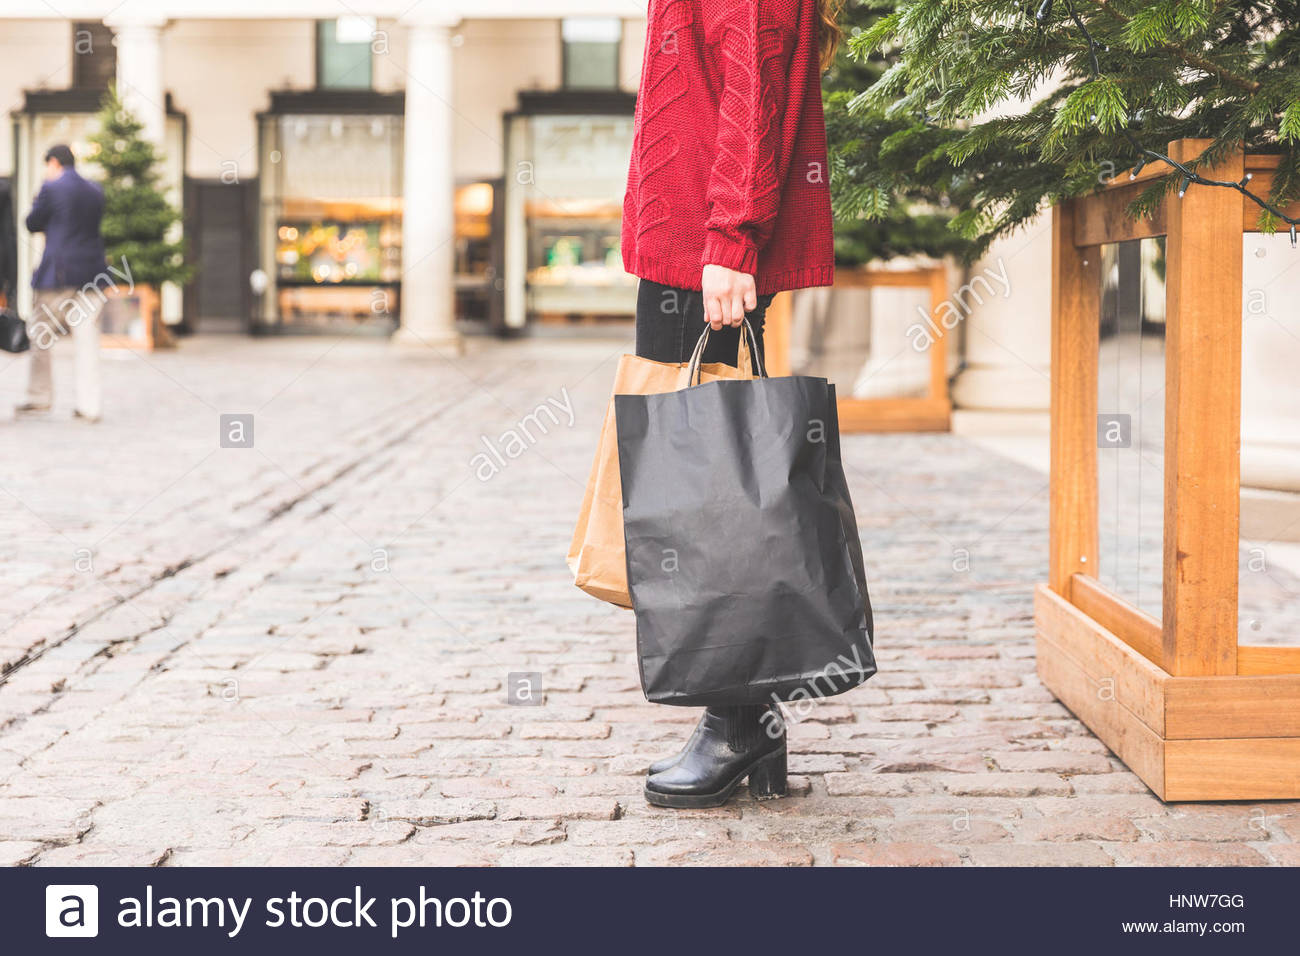 Shopper with shopping bags, Covent Garden, London, UK - Stock Image